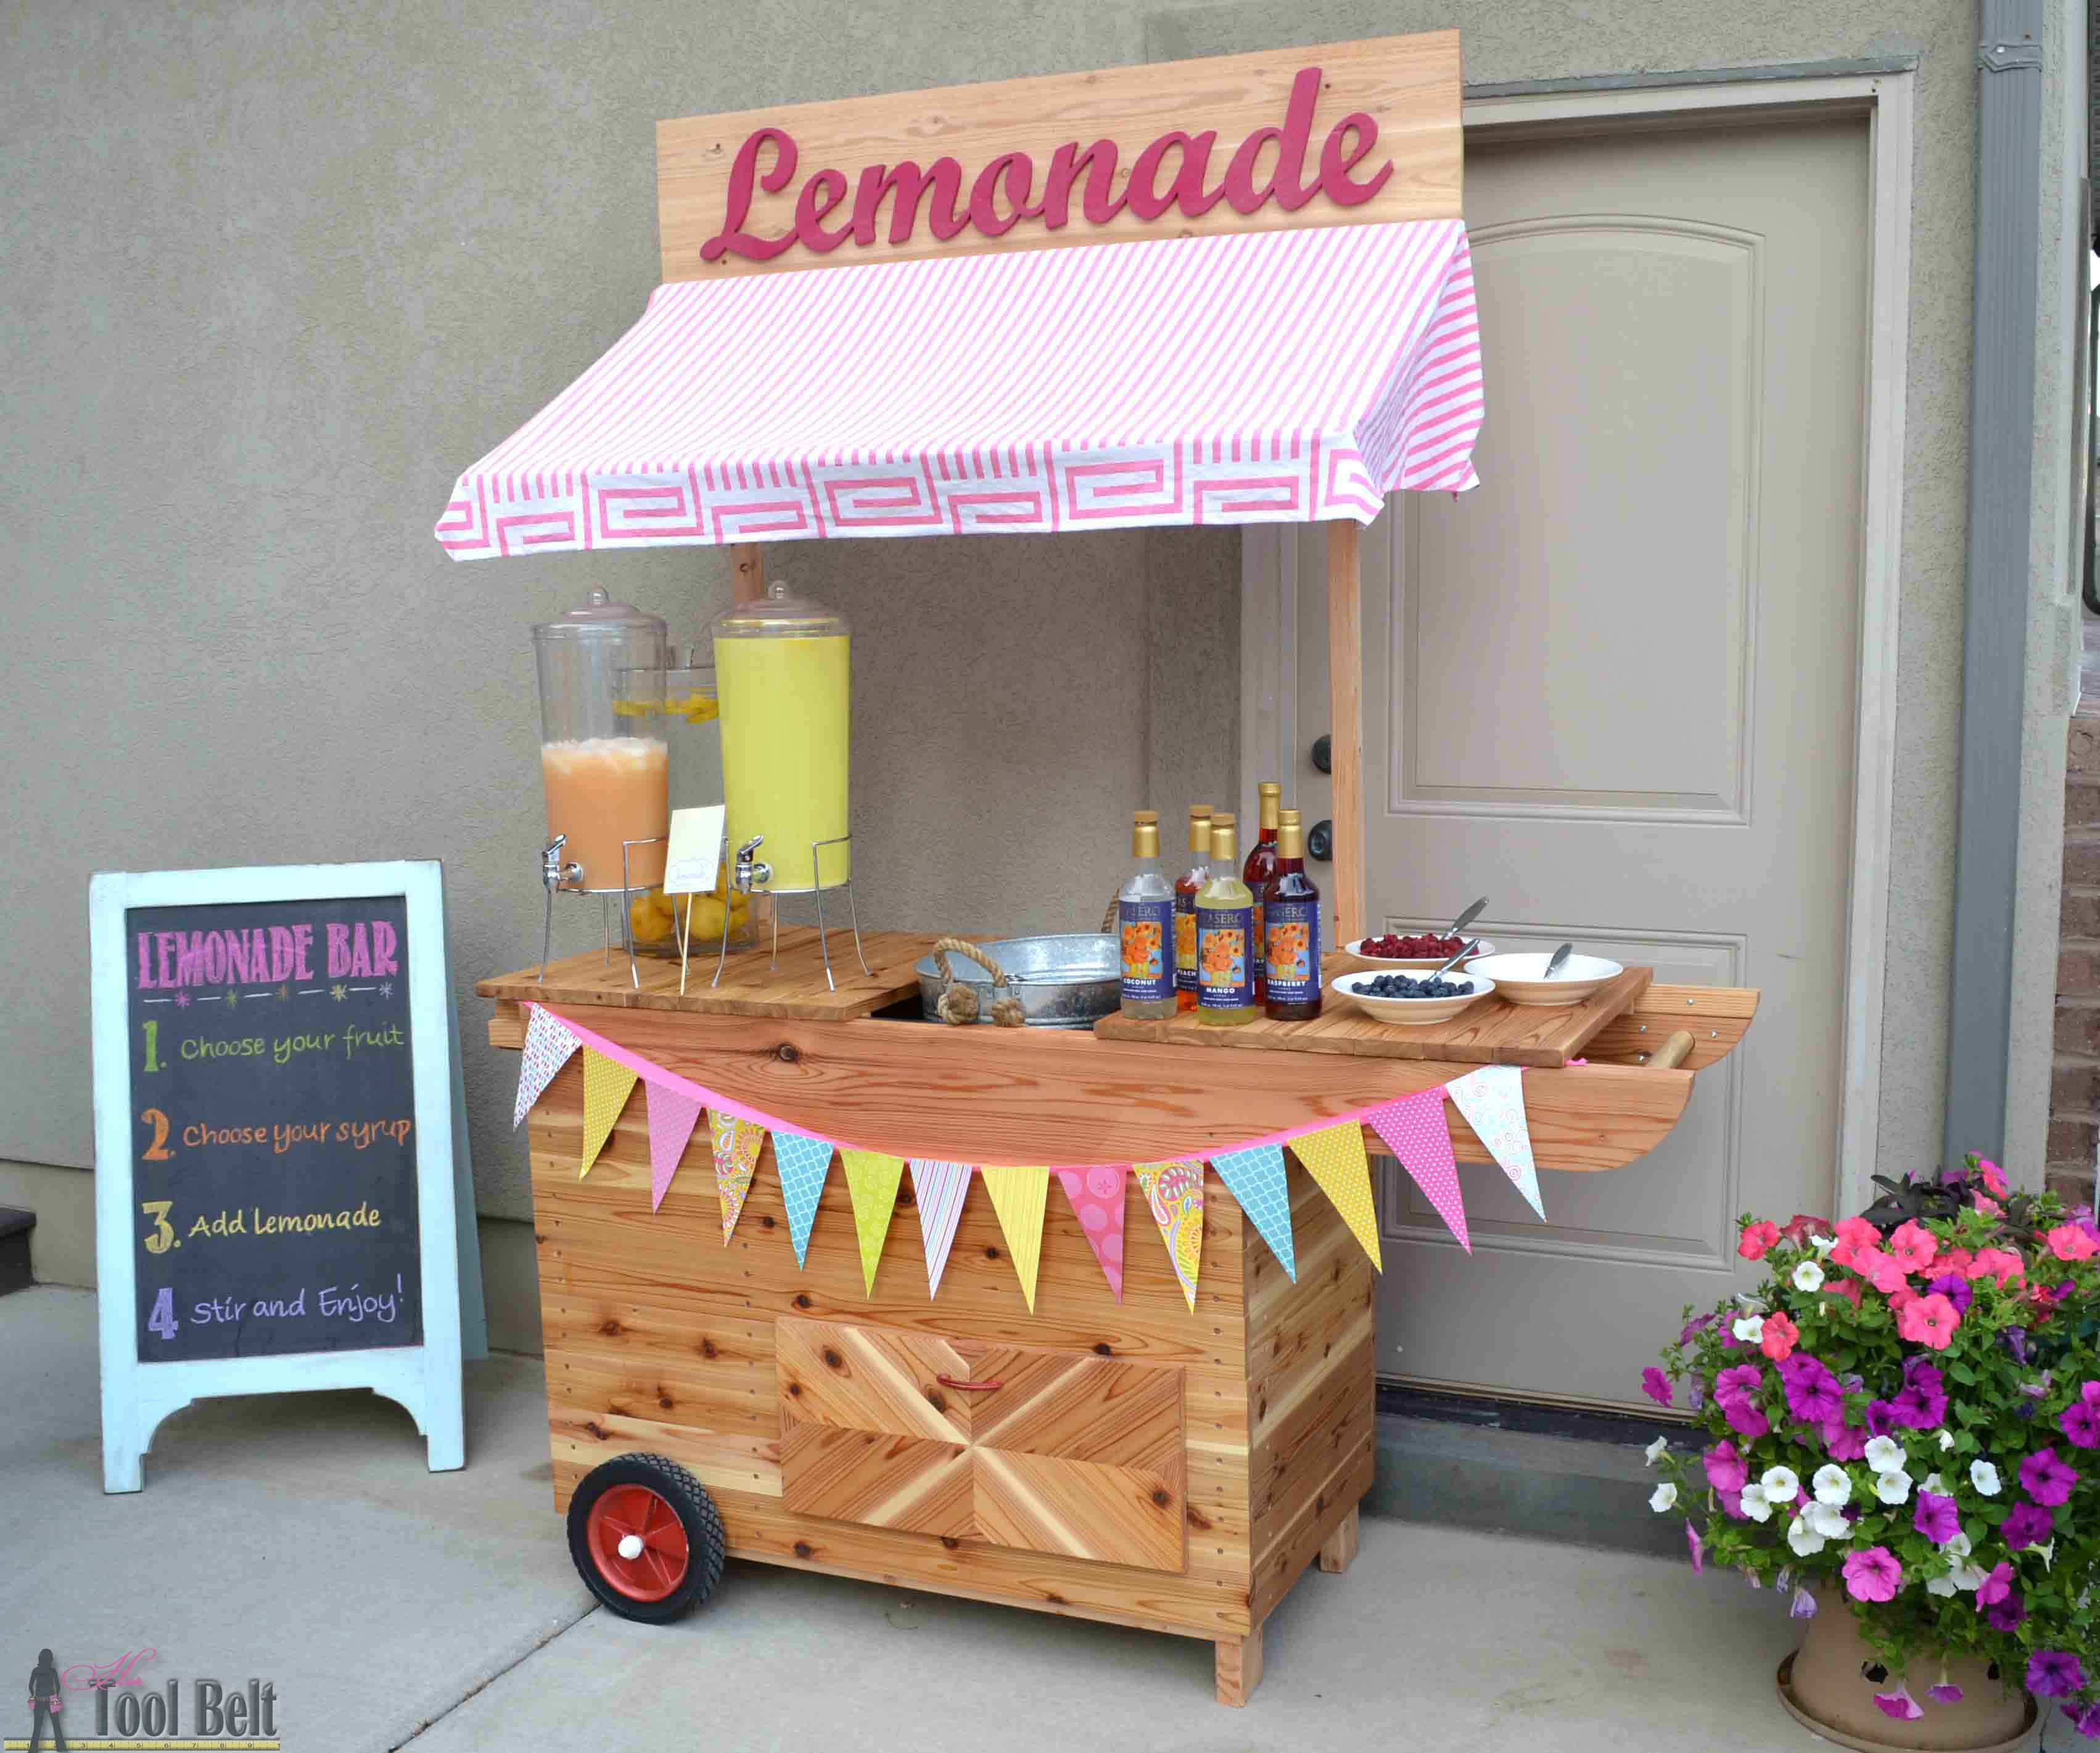 Diy lemonade stand with wheels her tool belt for Diy building ideas